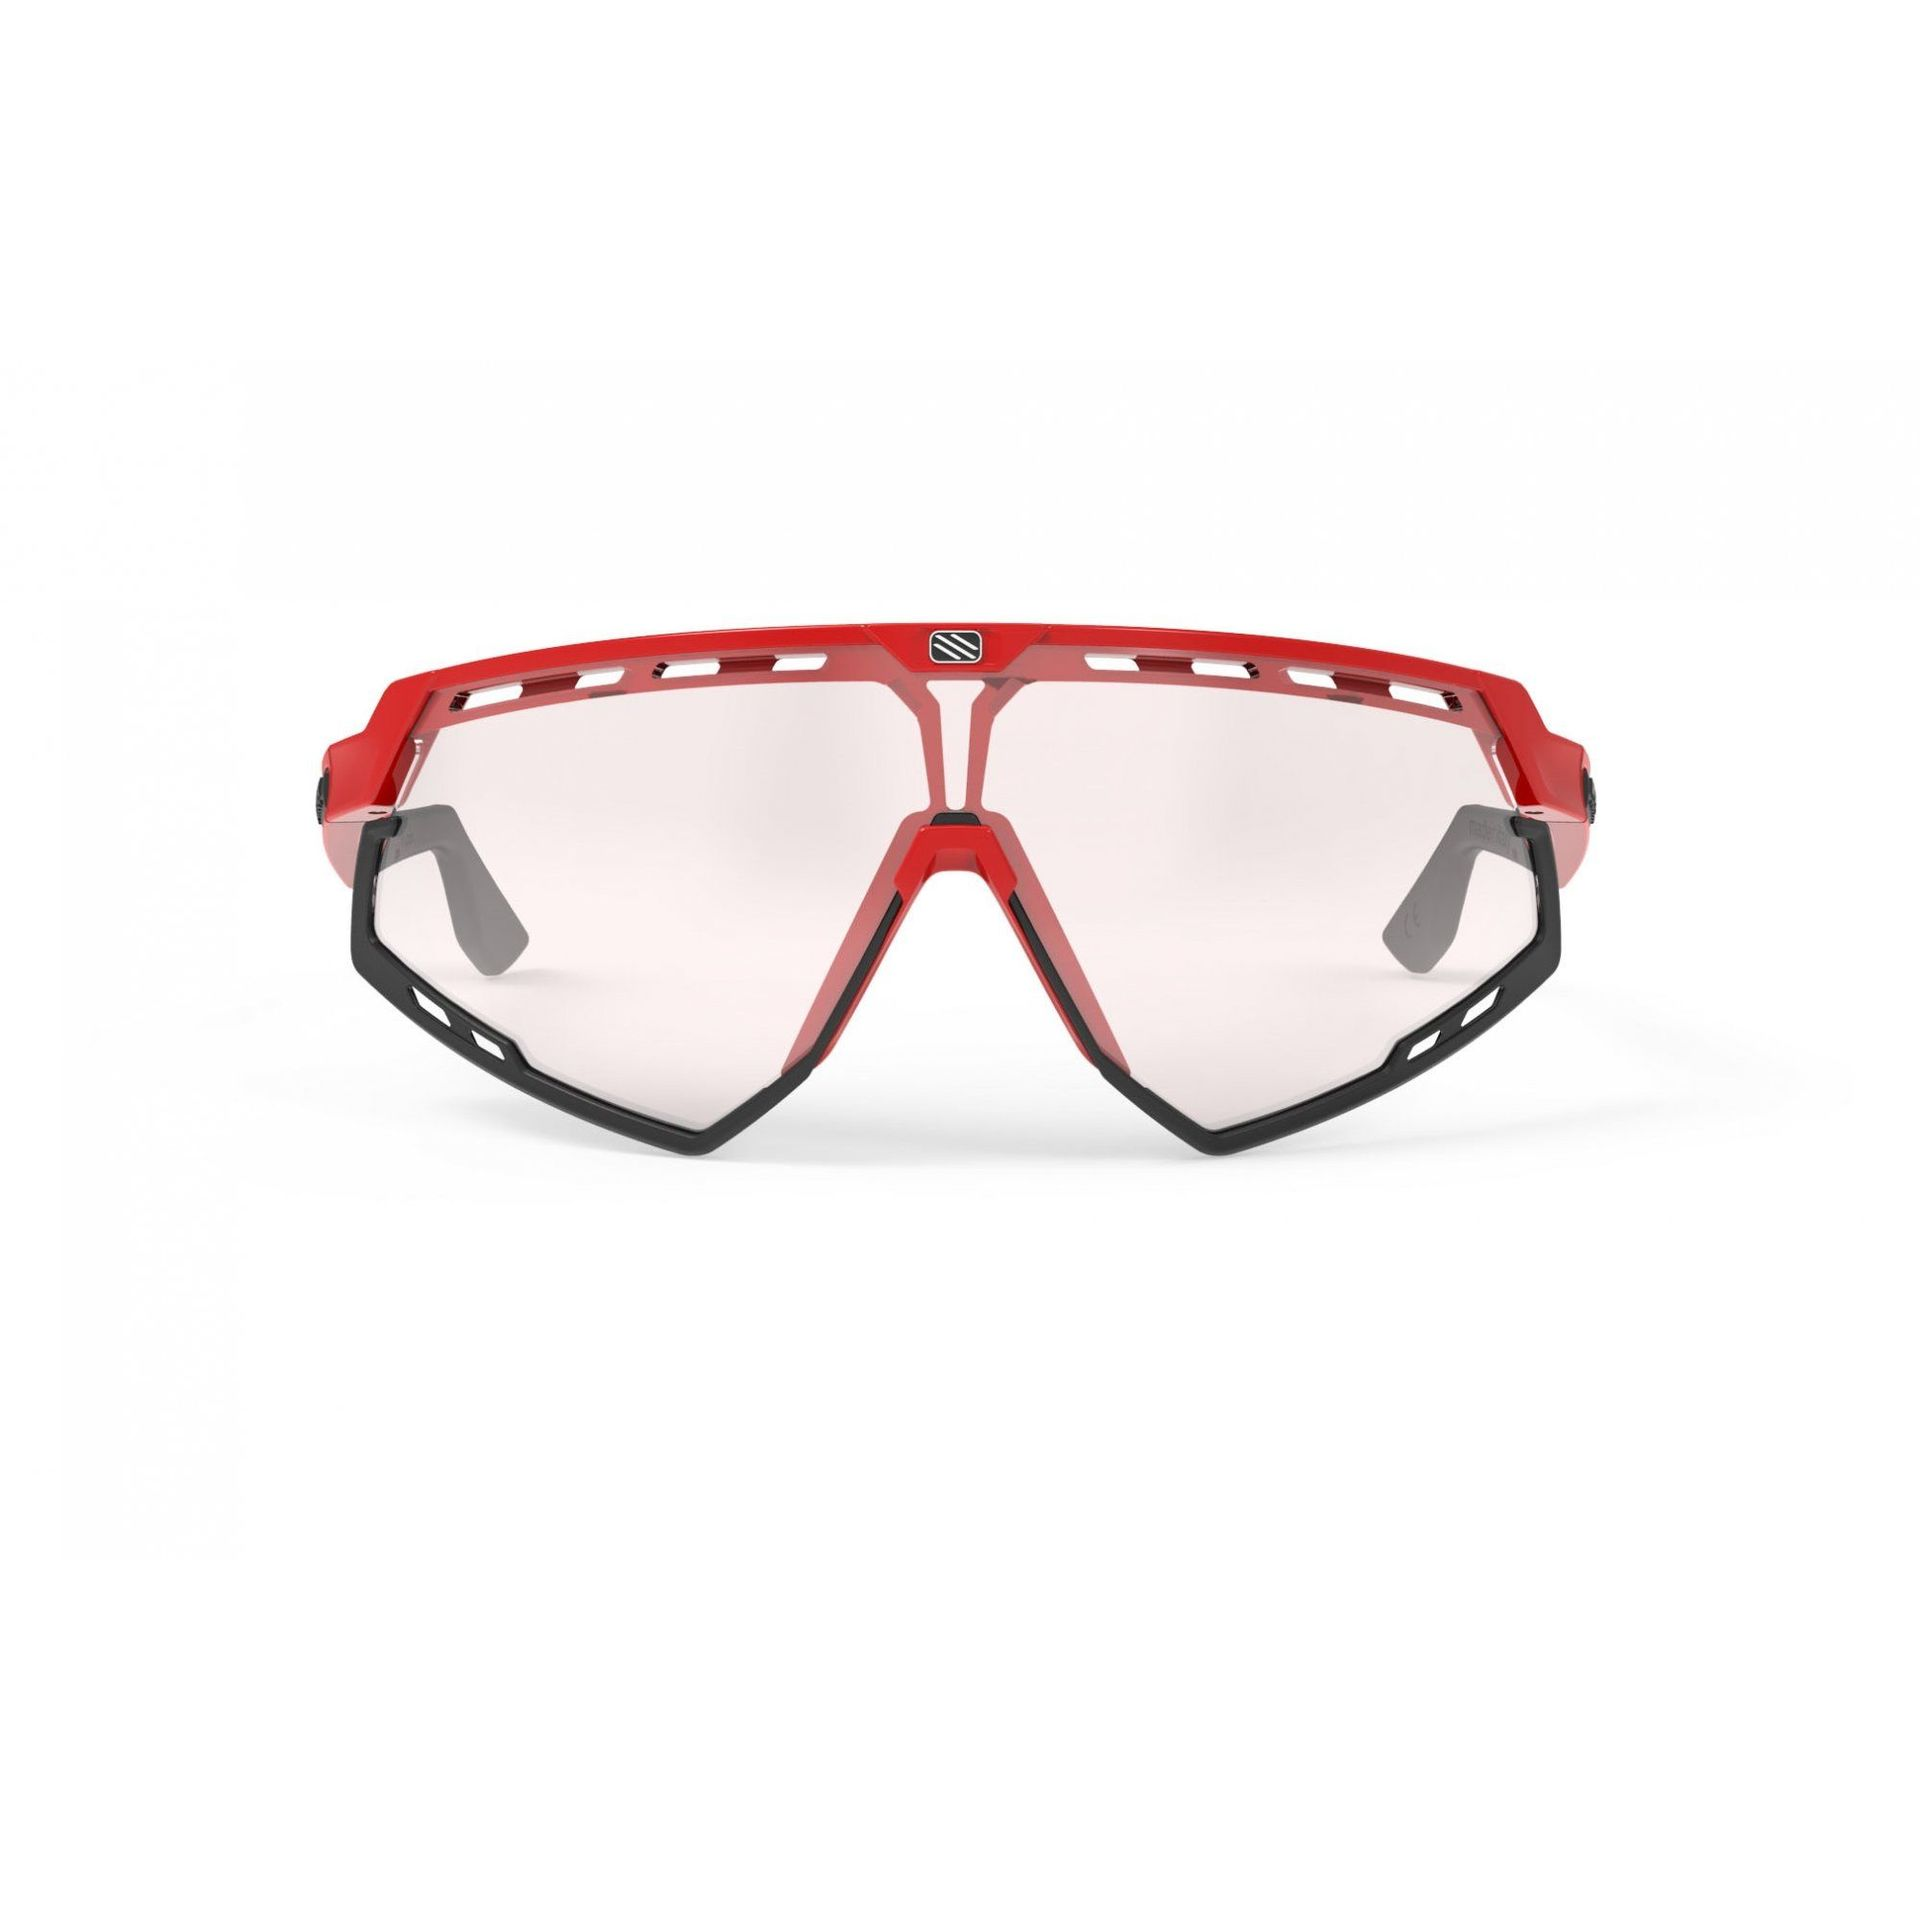 OKULARY RUDY PROJECT DEFENDER FIRE RED BLACK + IMPACTX PHOTOCHROMIC 2LASERRED SP528945 2